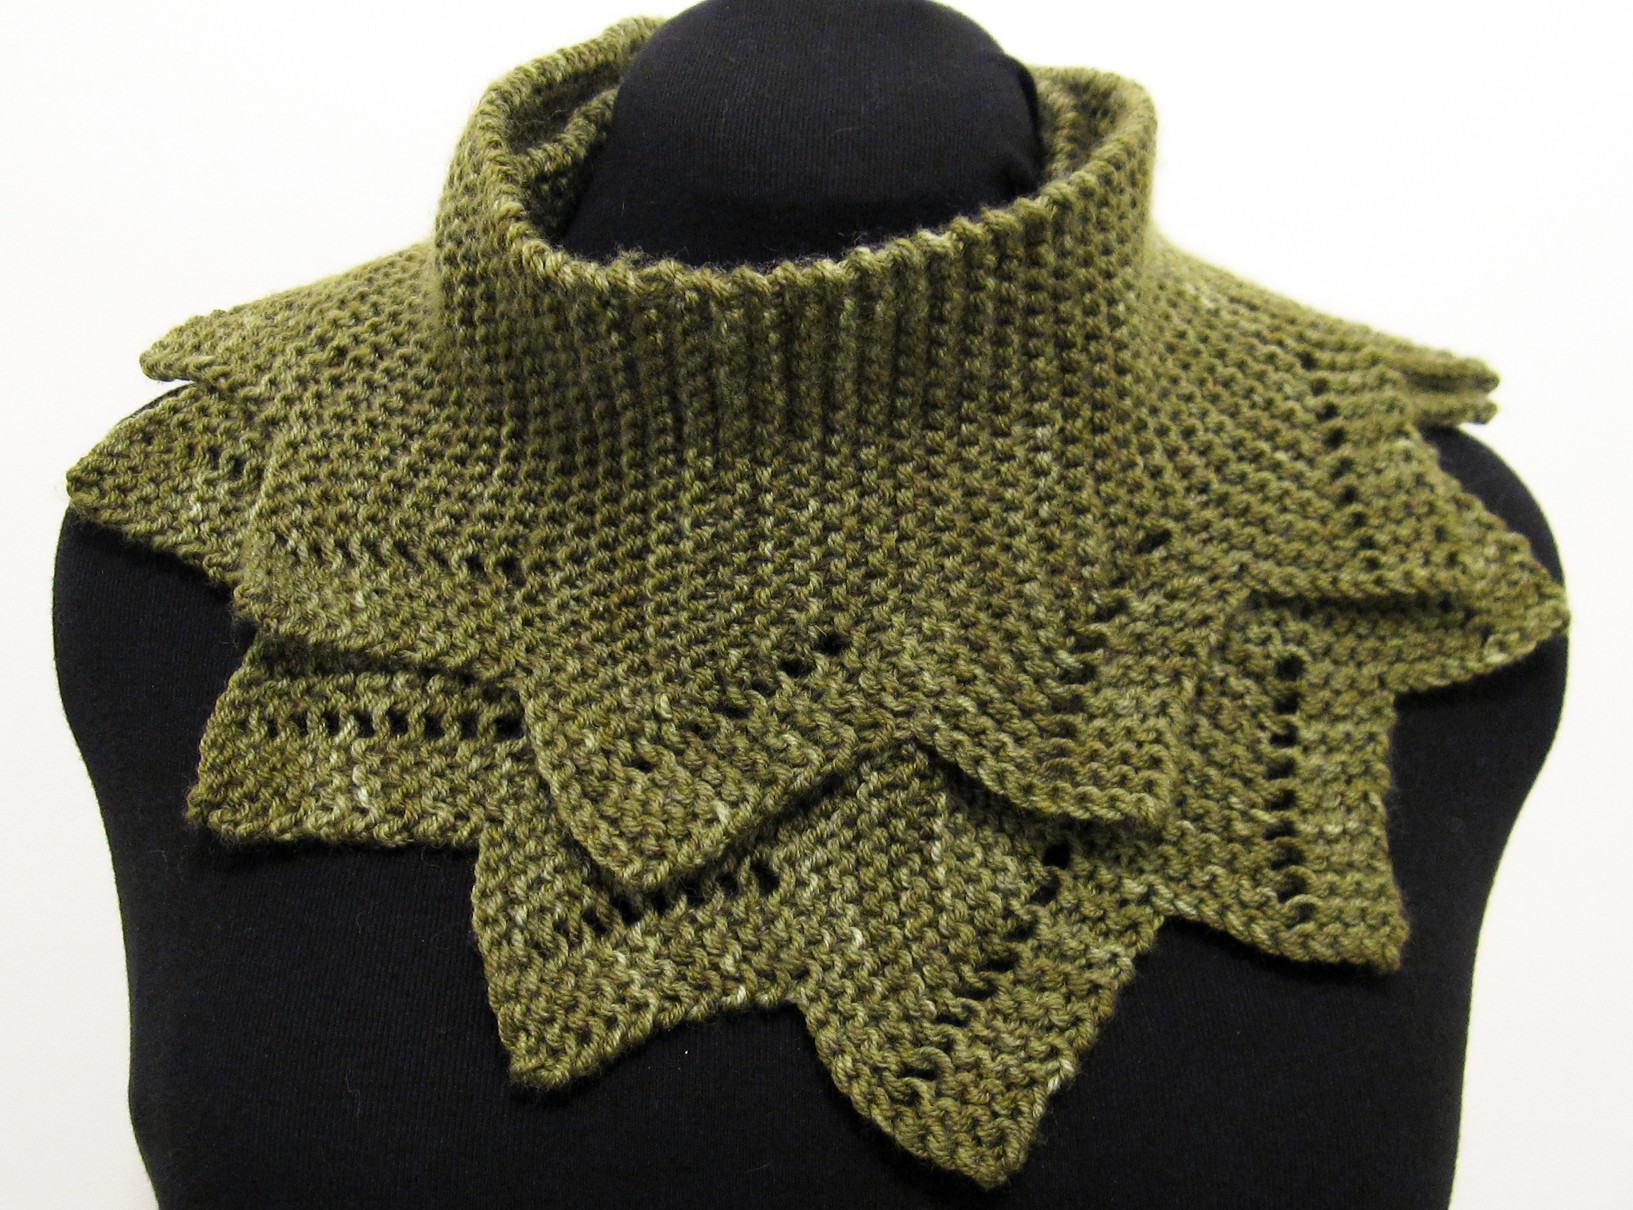 Knitting Stitches Sl1 : January Cowl JumperCablesKnitting